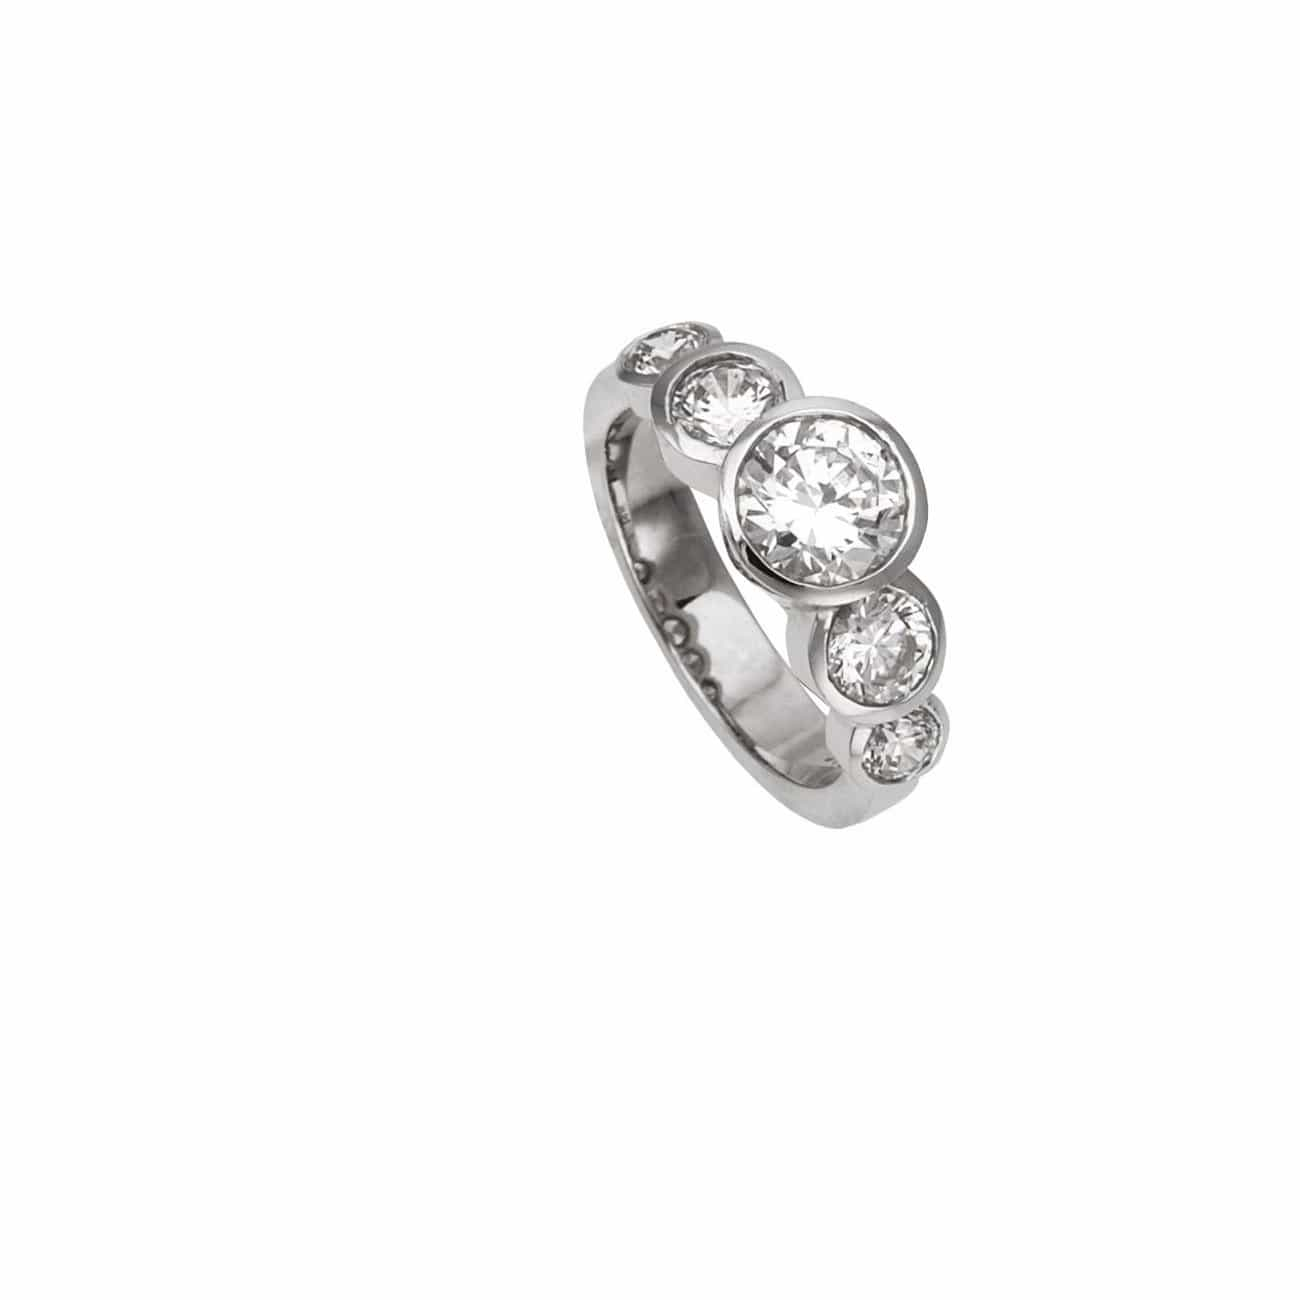 CHRIS AIRE QUINTUPLE  ENGAGEMENT RING - Chris Aire Fine Jewelry & Timepieces